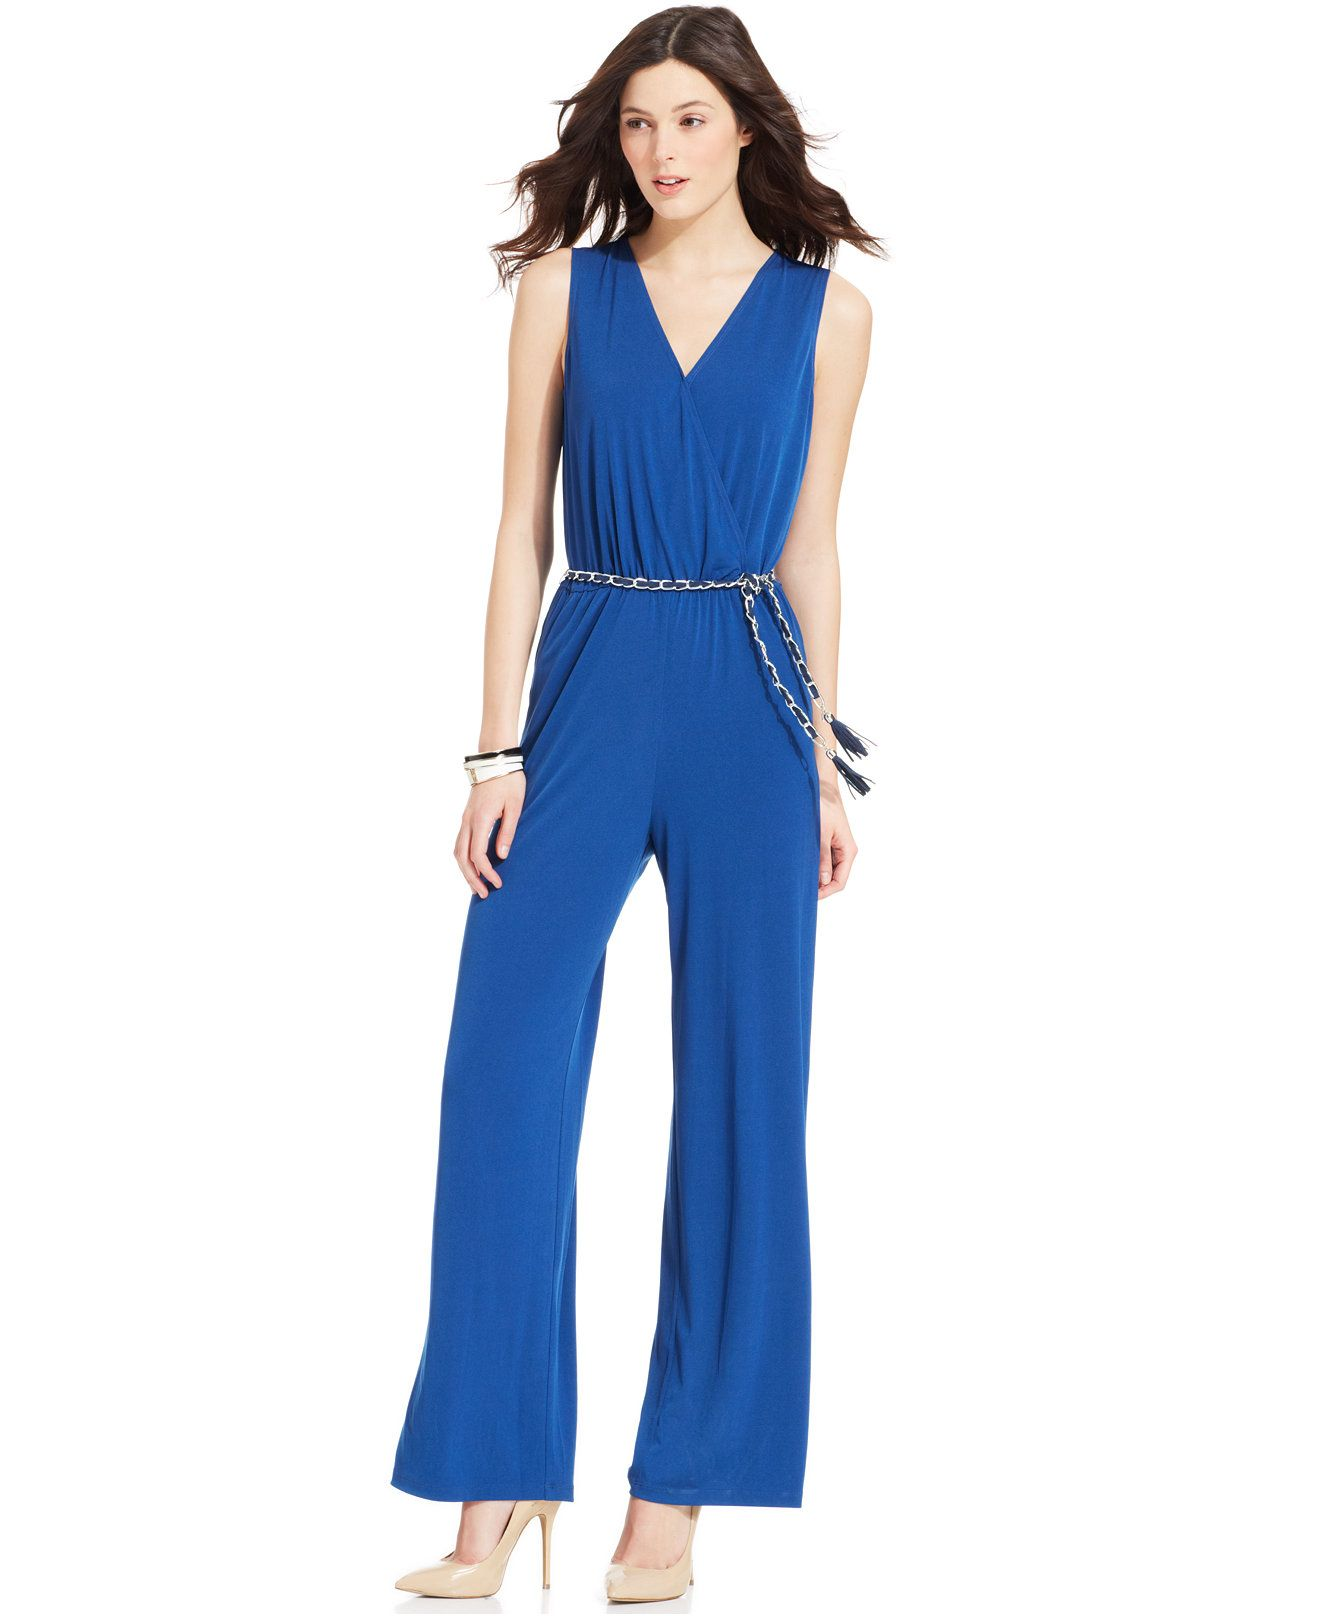 cf67e562fd0 NY Collection Sleeveless Chain-Belt Jumpsuit - Jumpsuits & Rompers - Women  - Macy's